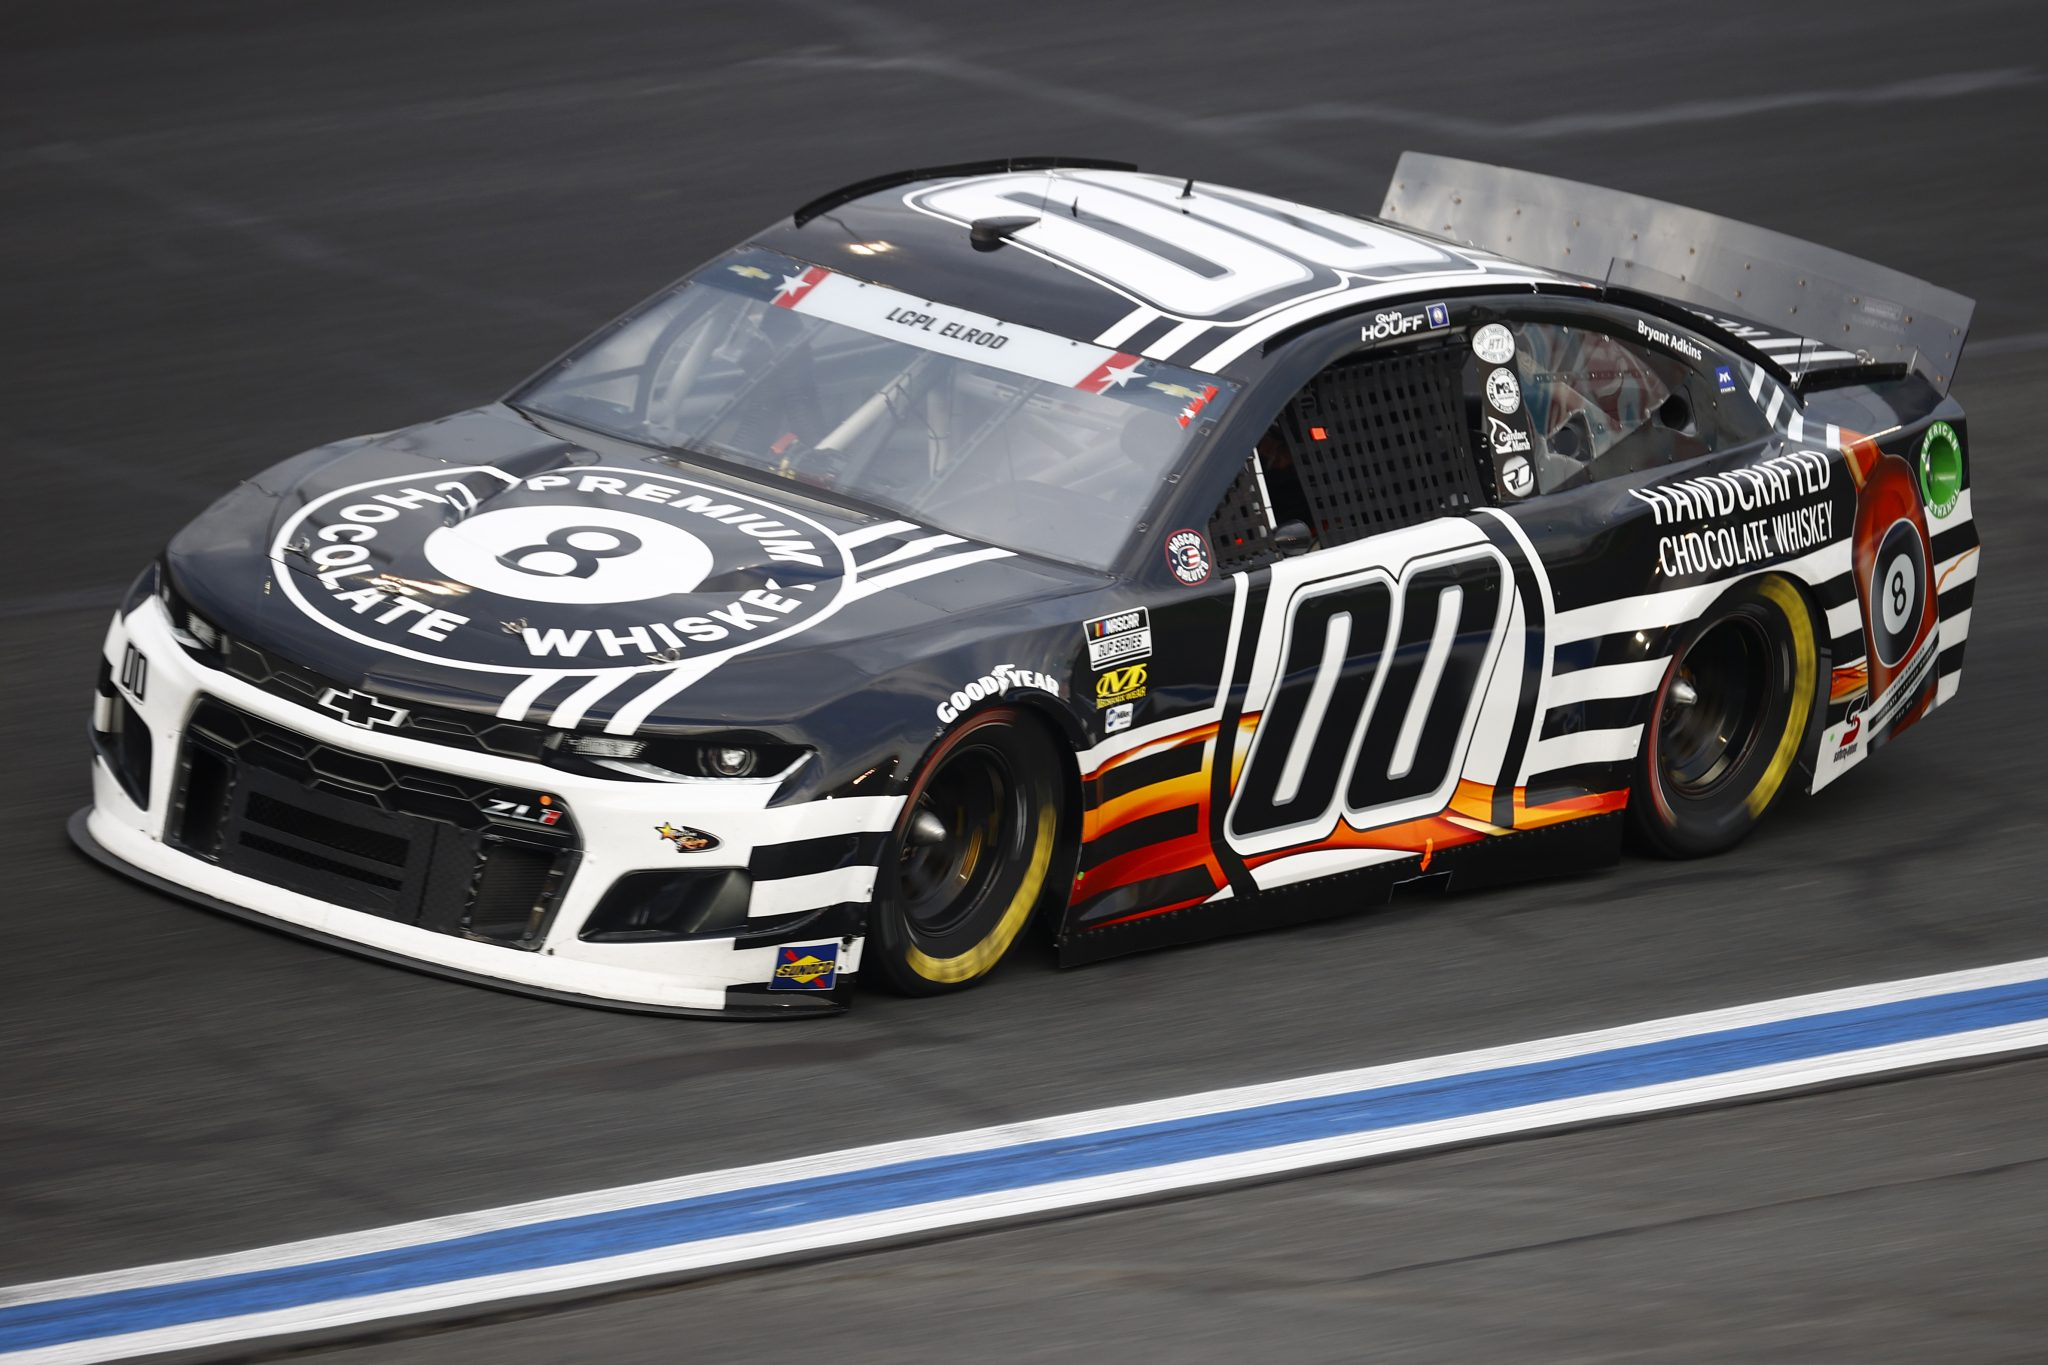 CONCORD, NORTH CAROLINA - MAY 28: Quin Houff, driver of the #00 8 Ball Chocolate Whiskey Chevrolet, drives during practice for the NASCAR Cup Series Coca-Cola 600 at Charlotte Motor Speedway on May 28, 2021 in Concord, North Carolina. (Photo by Jared C. Tilton/Getty Images) | Getty Images